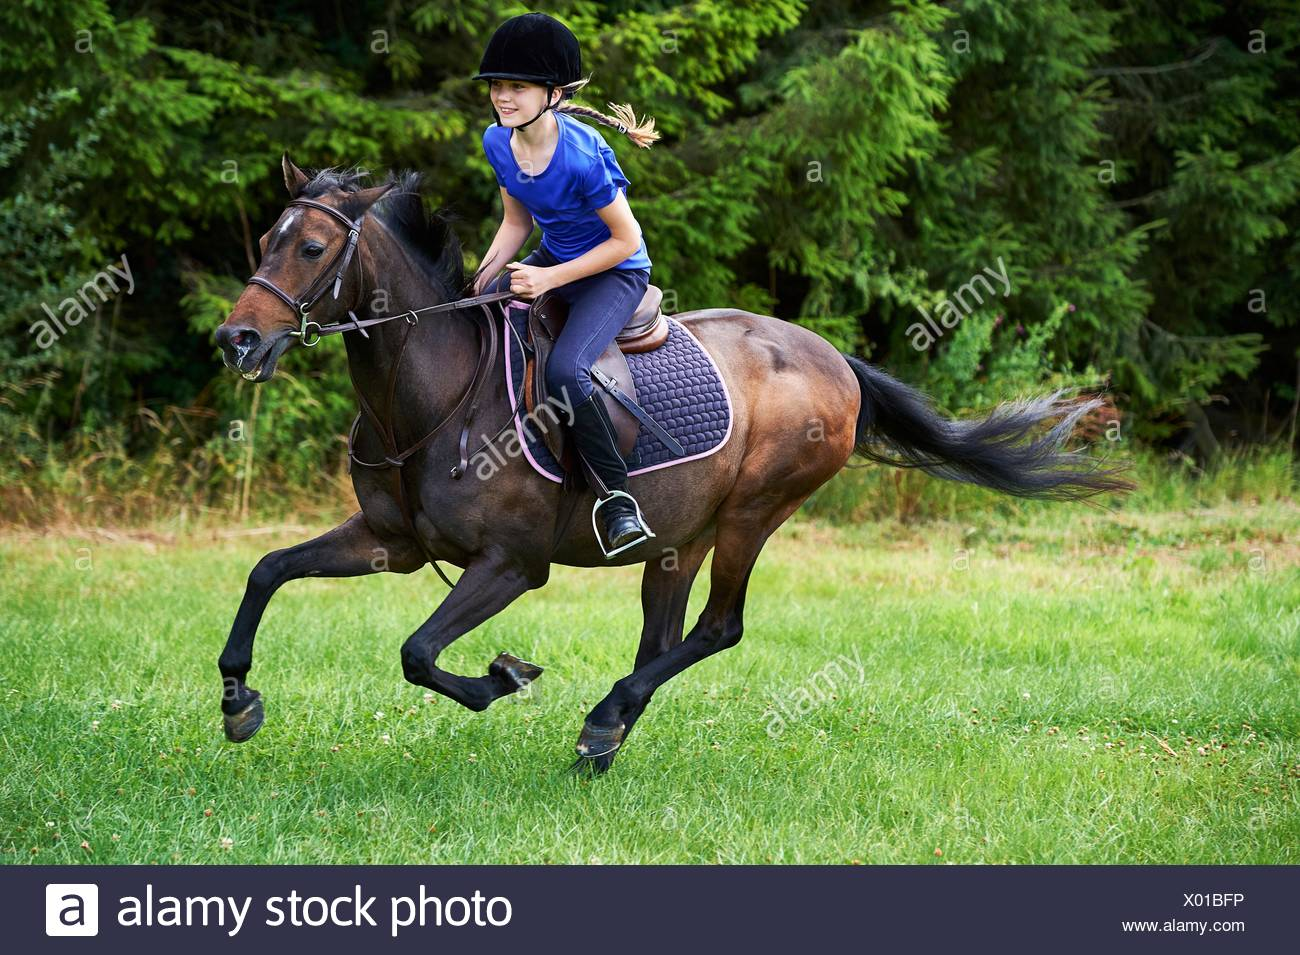 Side view of girl wearing riding hat galloping on horseback - Stock Image